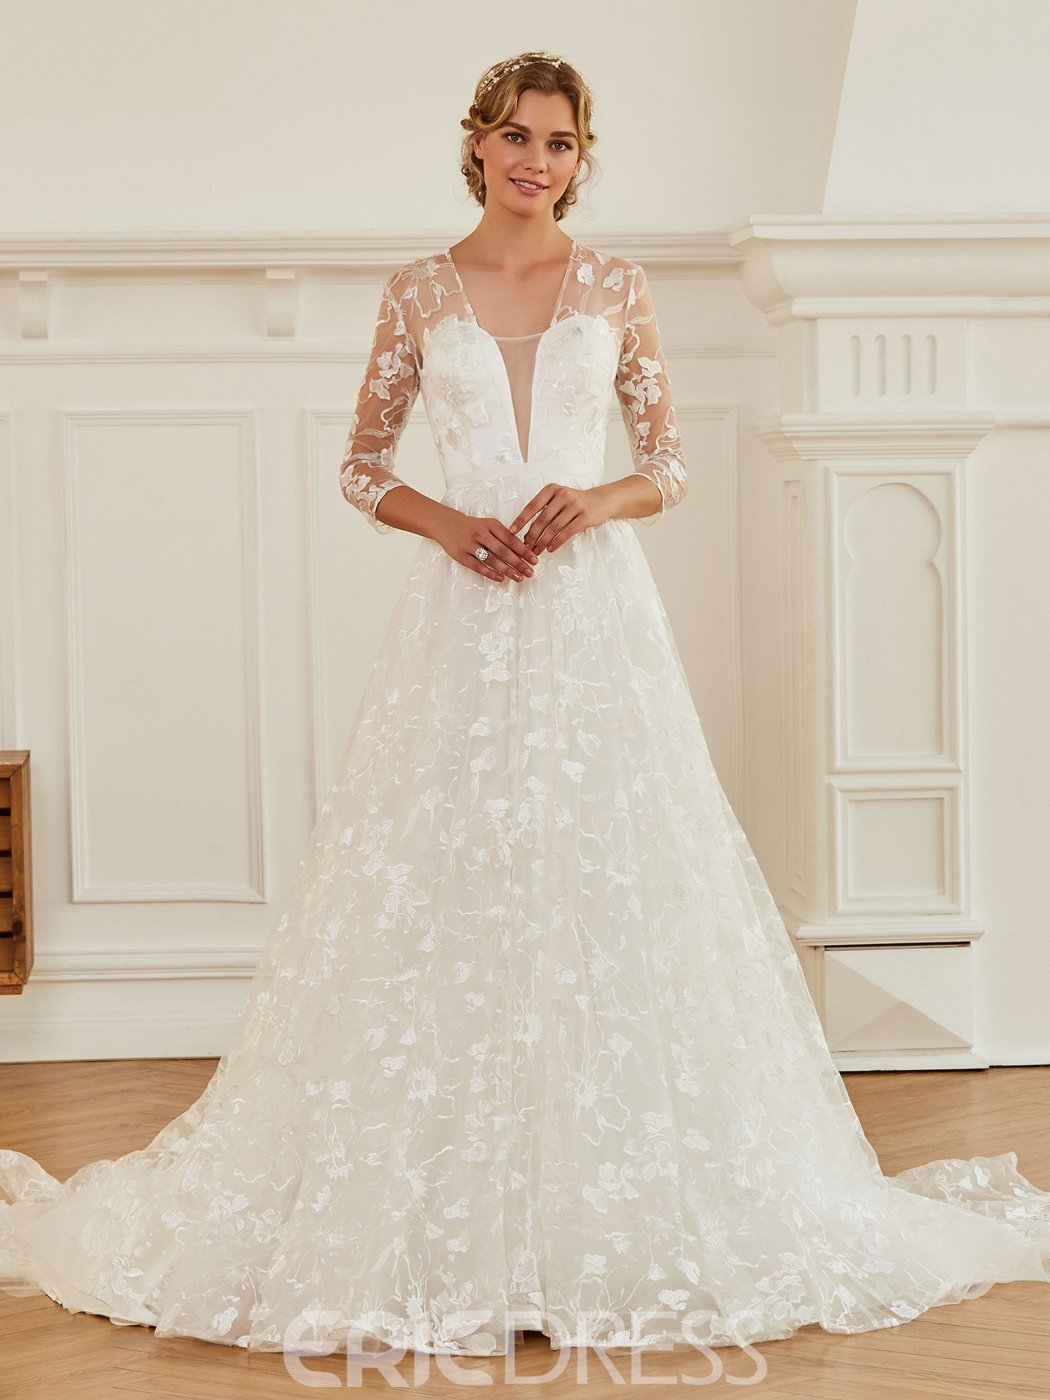 Ericdress V Neck A Line Lace Wedding Dress with Sleeves